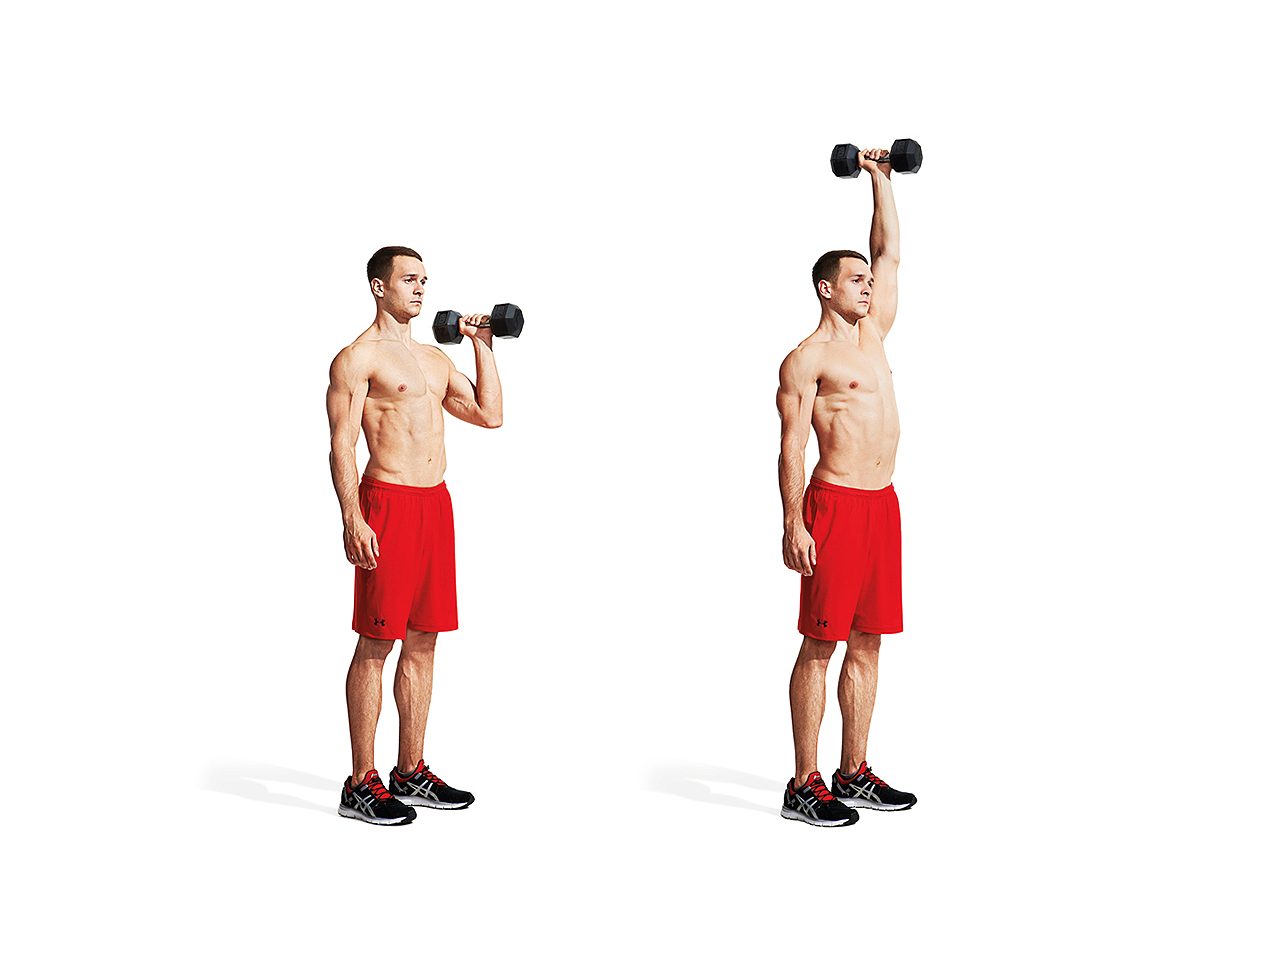 One-Arm Dumbbell Hang Clean and Press Video - Watch Proper ...